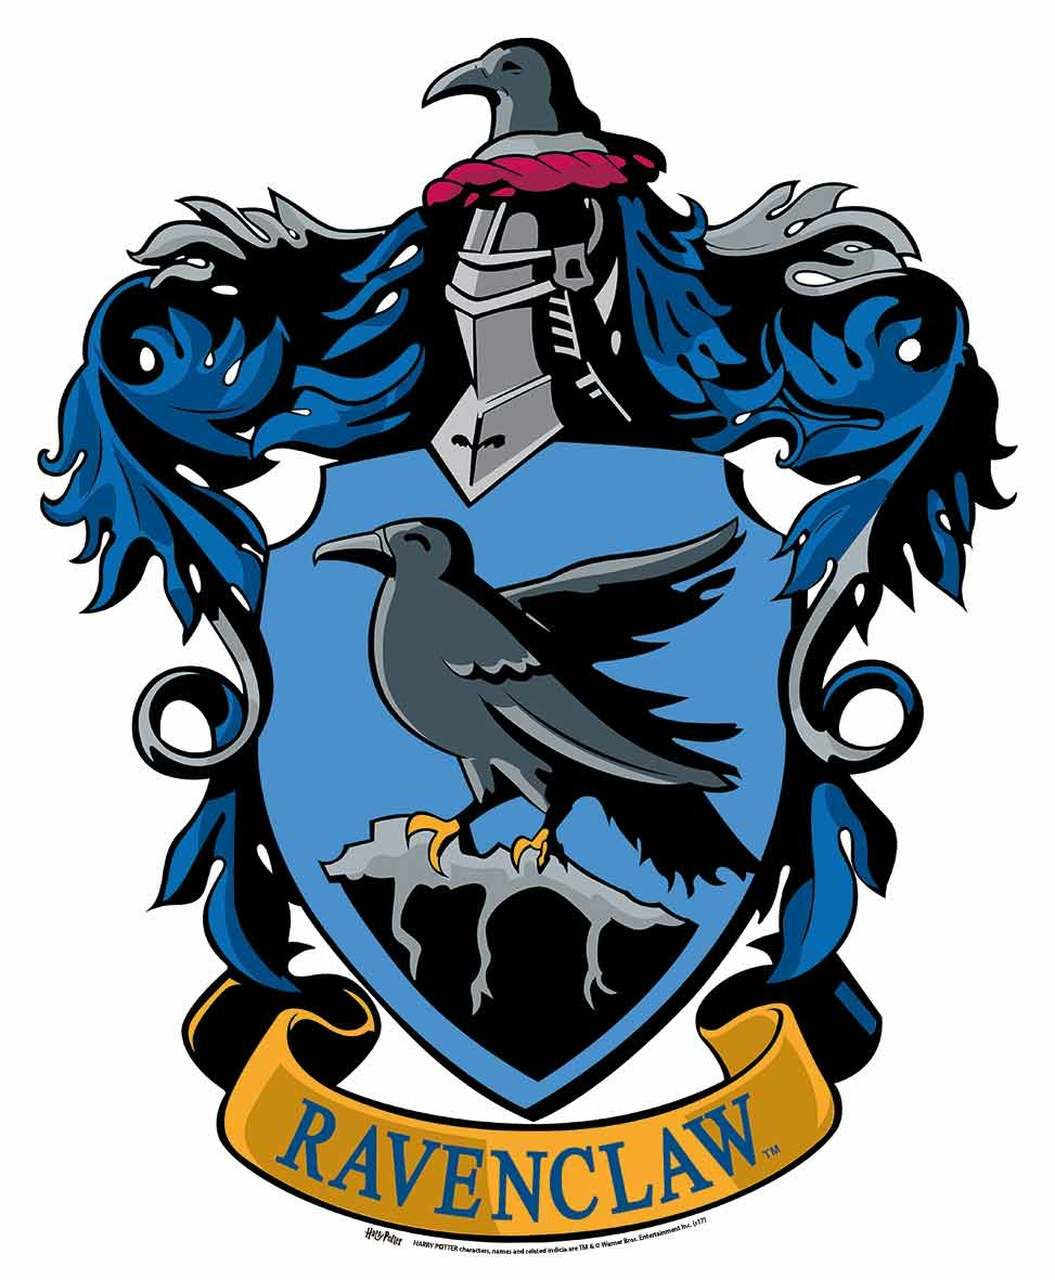 Ravenclaw Crest From Harry Potter Wall Mounted Official Cardboard